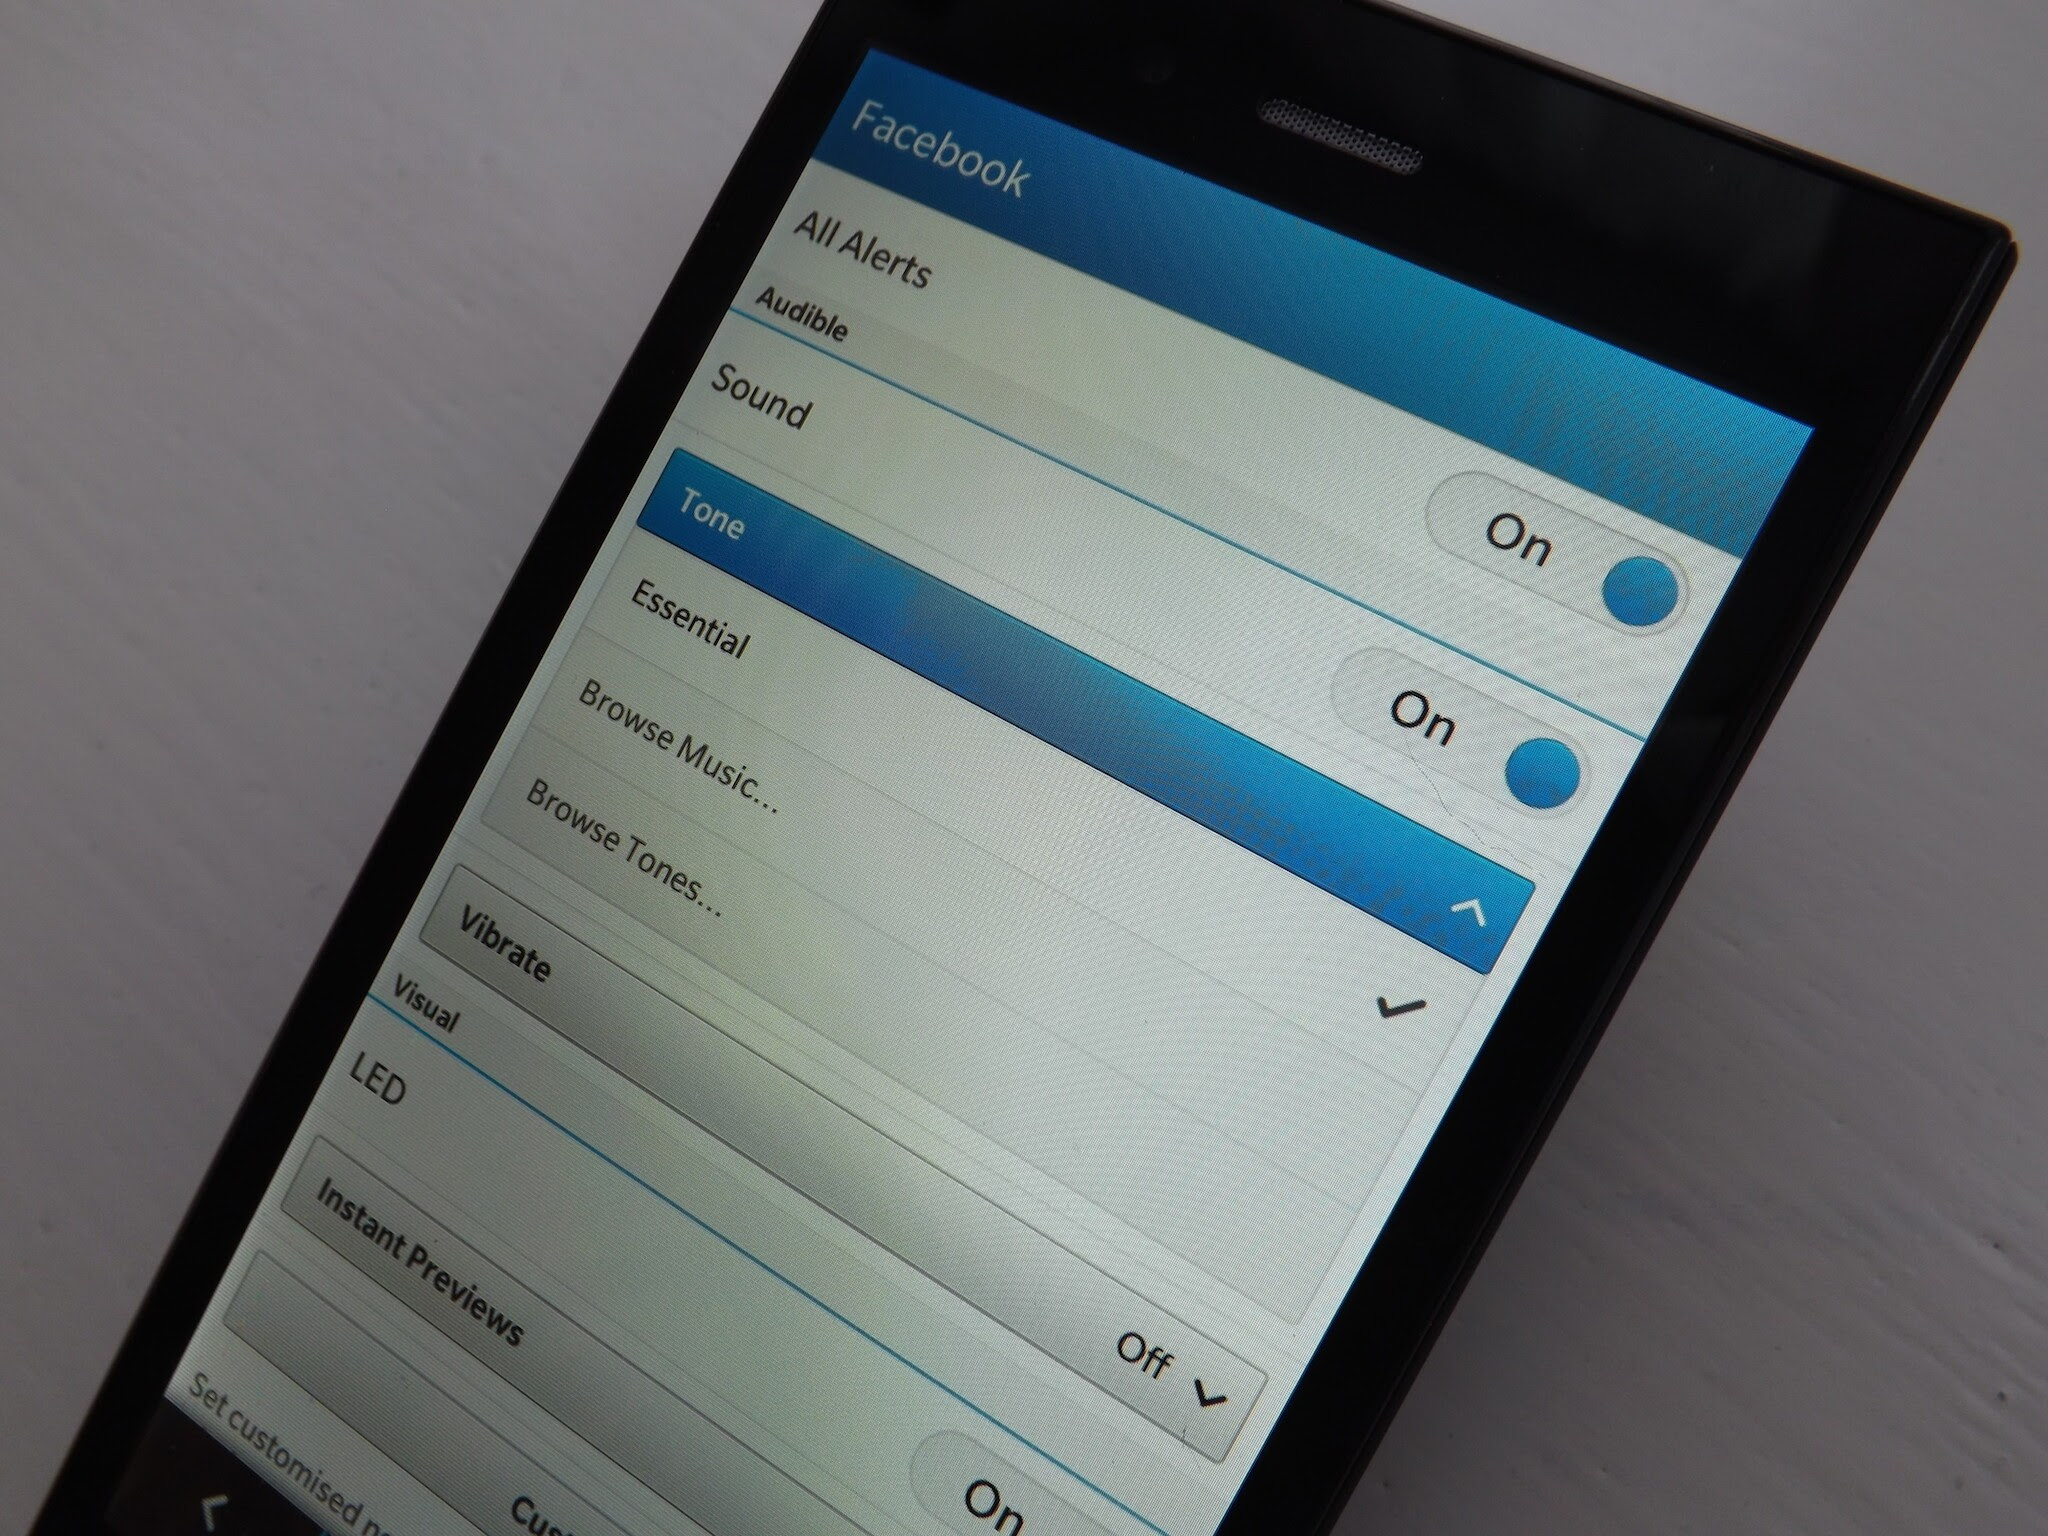 How To Change The Notification Tones On The Blackberry Z3 Crackberry Com